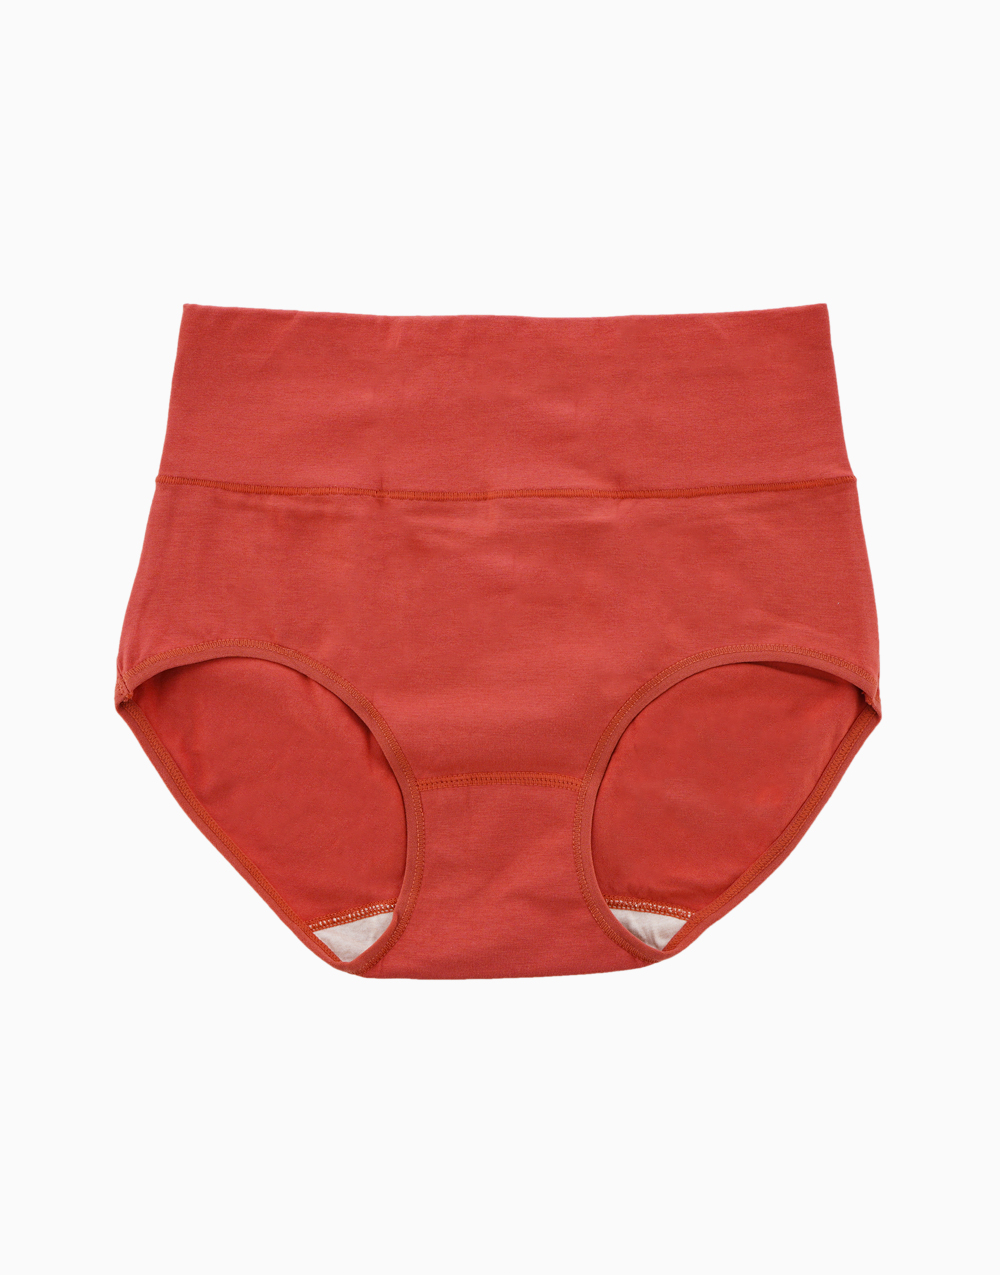 Belly Bikinis in Brick Red (Set of 3 High Rise Control Panties) by Jellyfit | Small